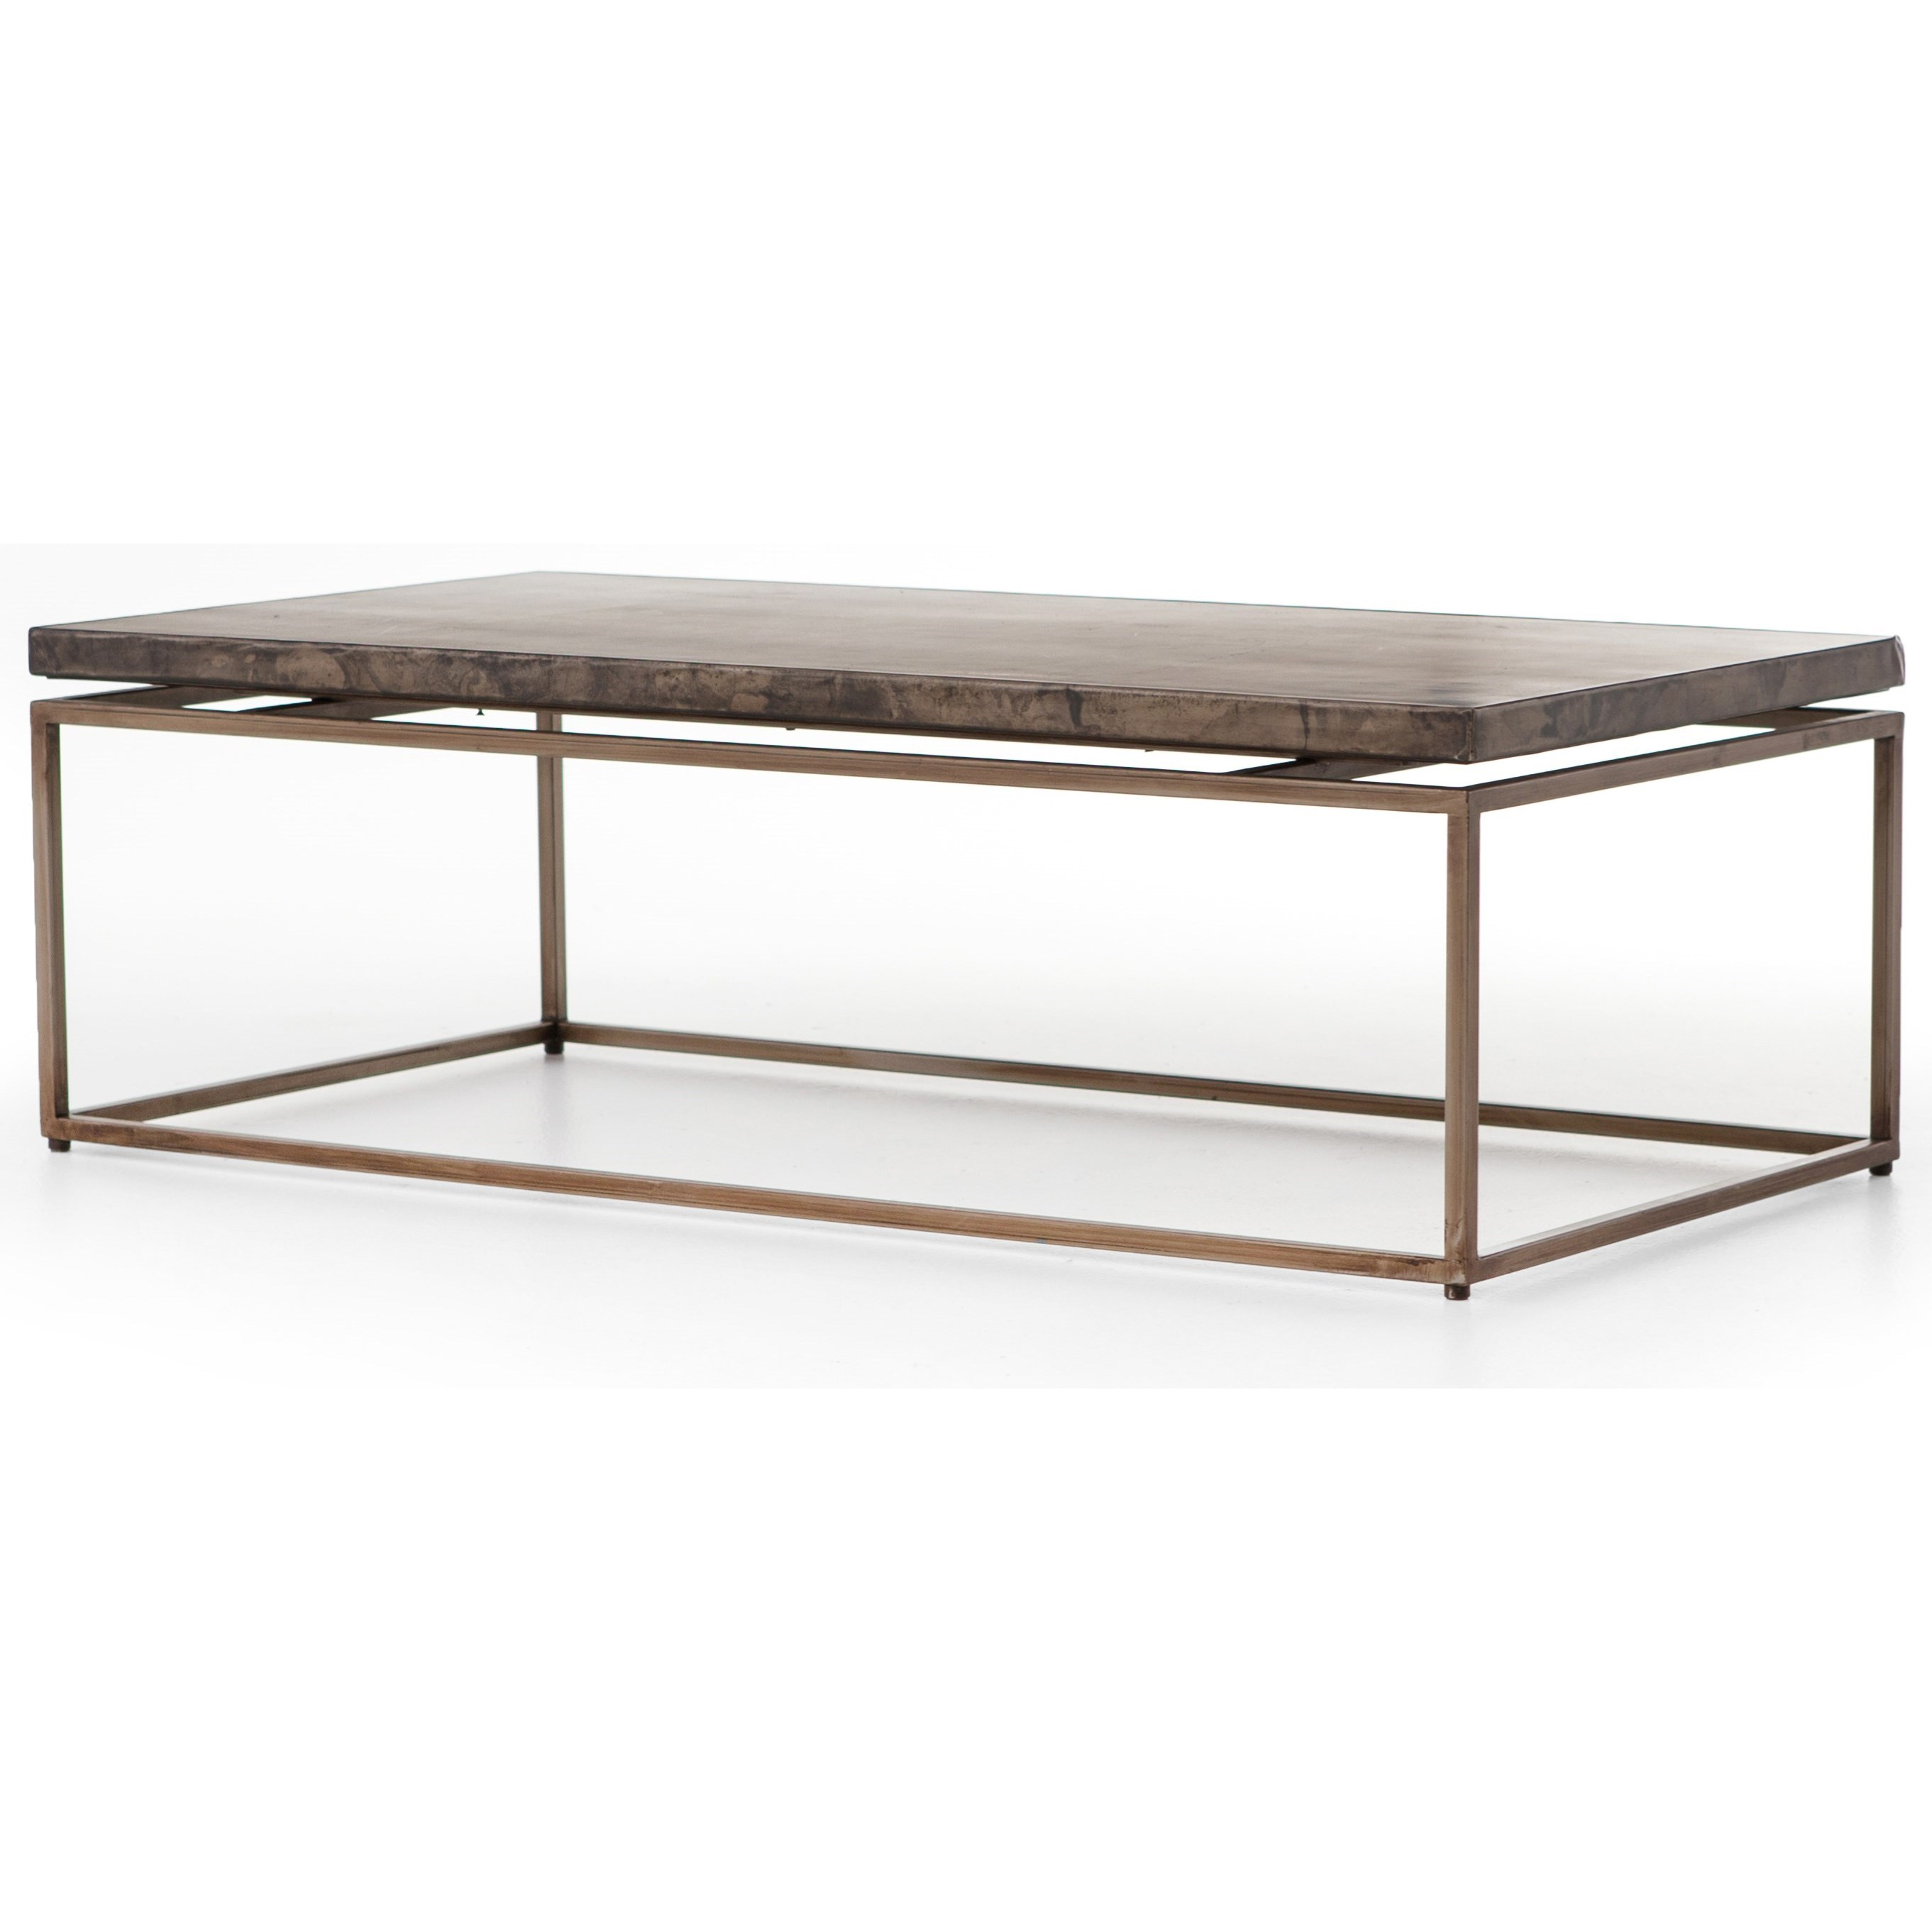 Four Hands Wesson Roman Coffee Table - Item Number: UWES-008